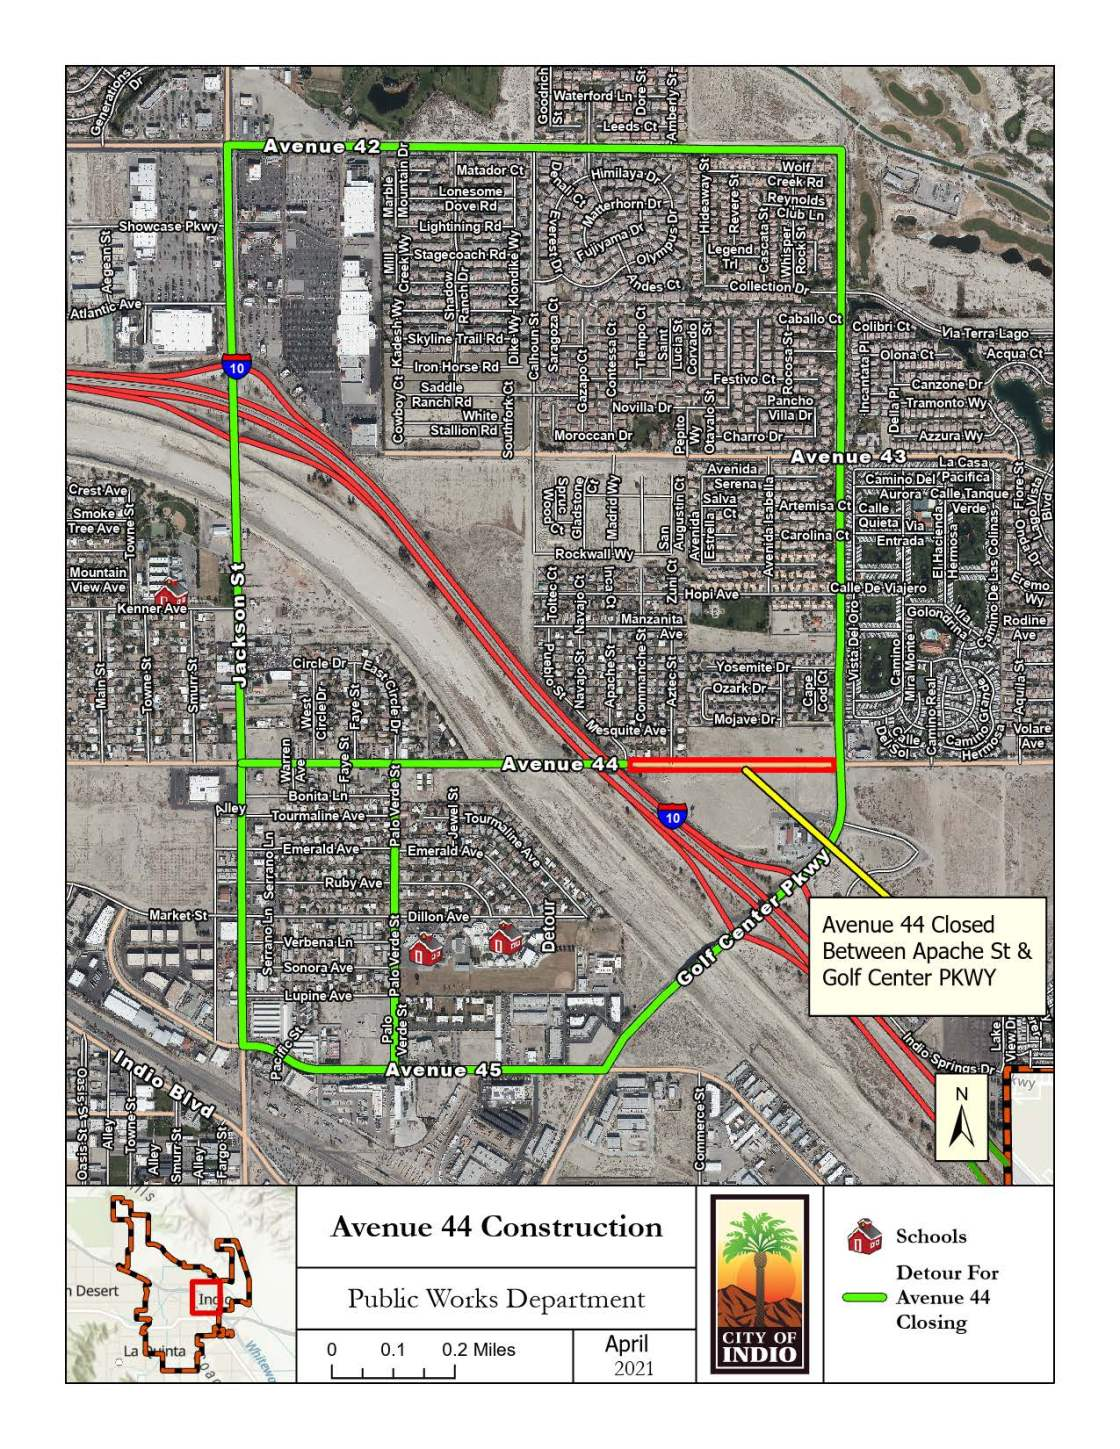 Avenue 44 temporarily closed for road improvements